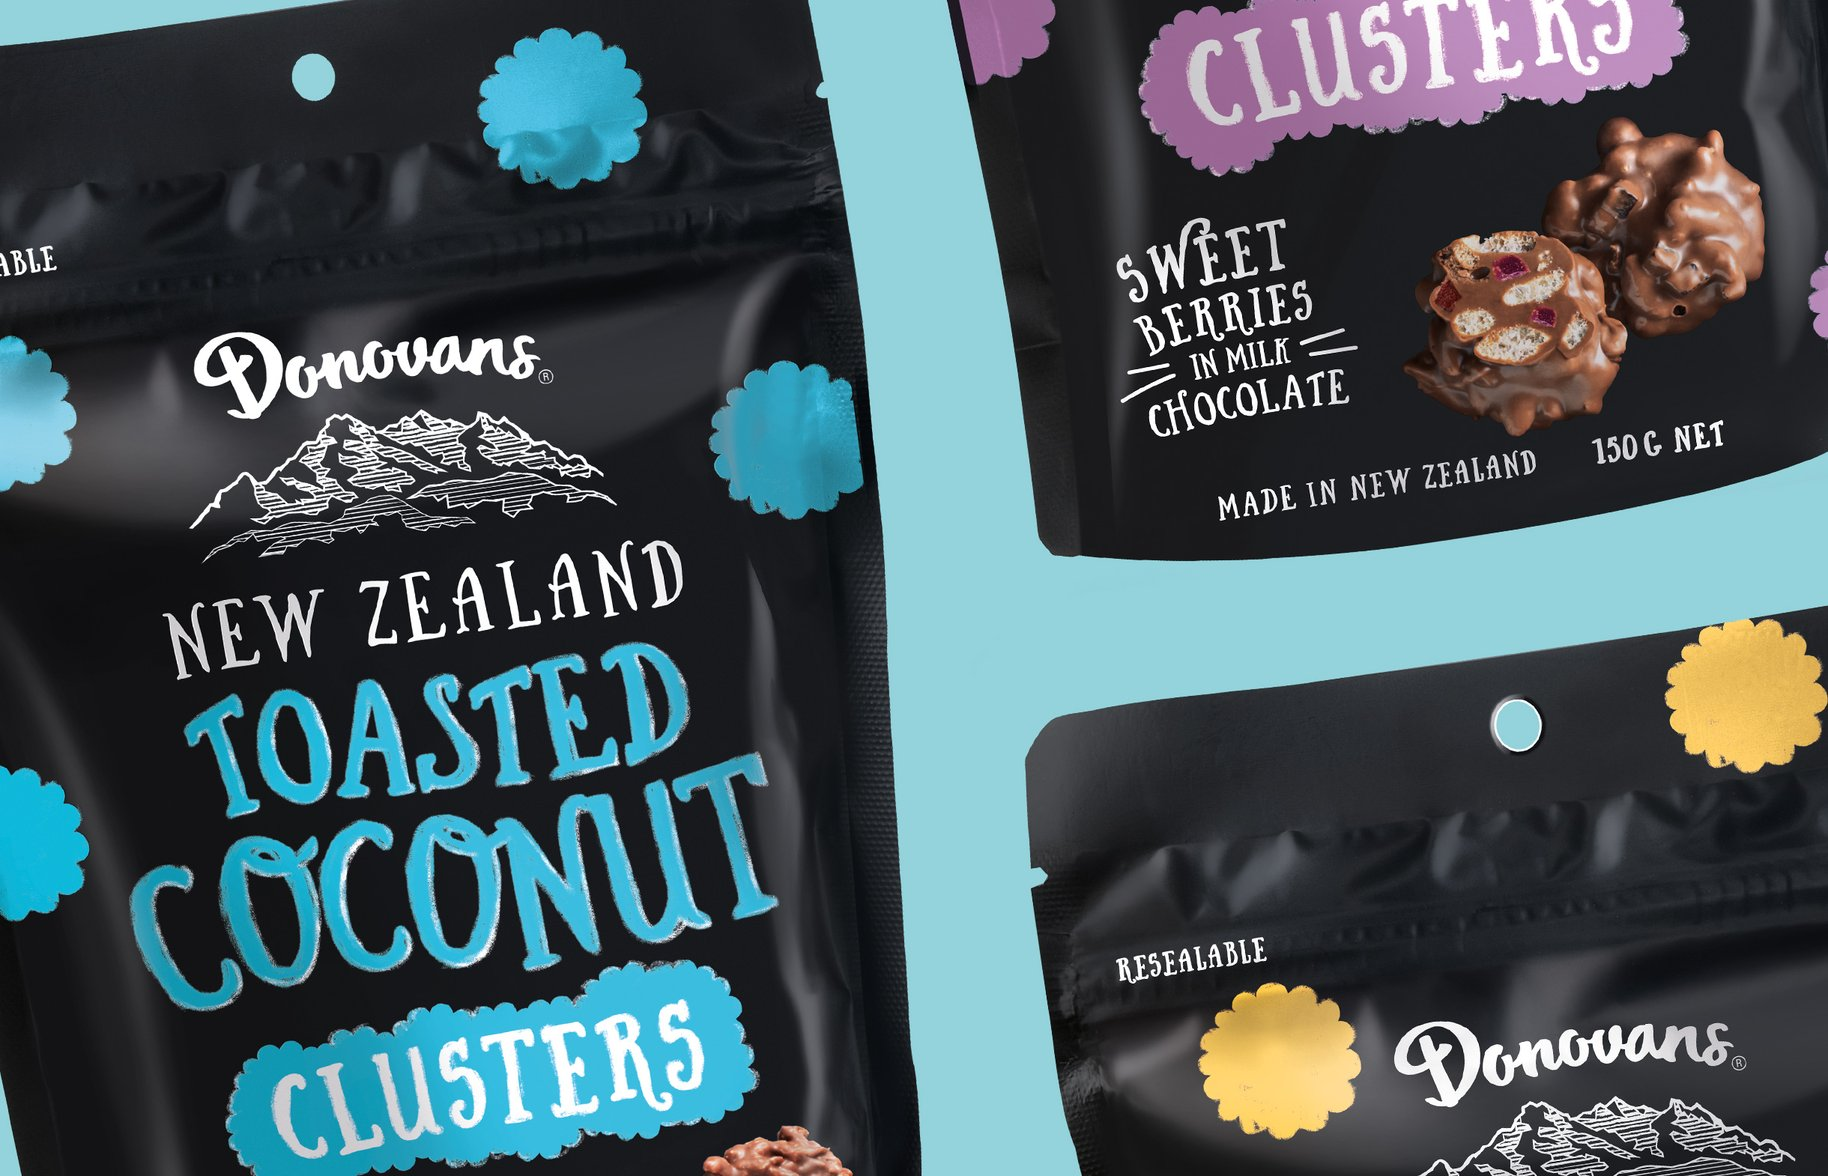 Donovans Chocolate clusters packaging